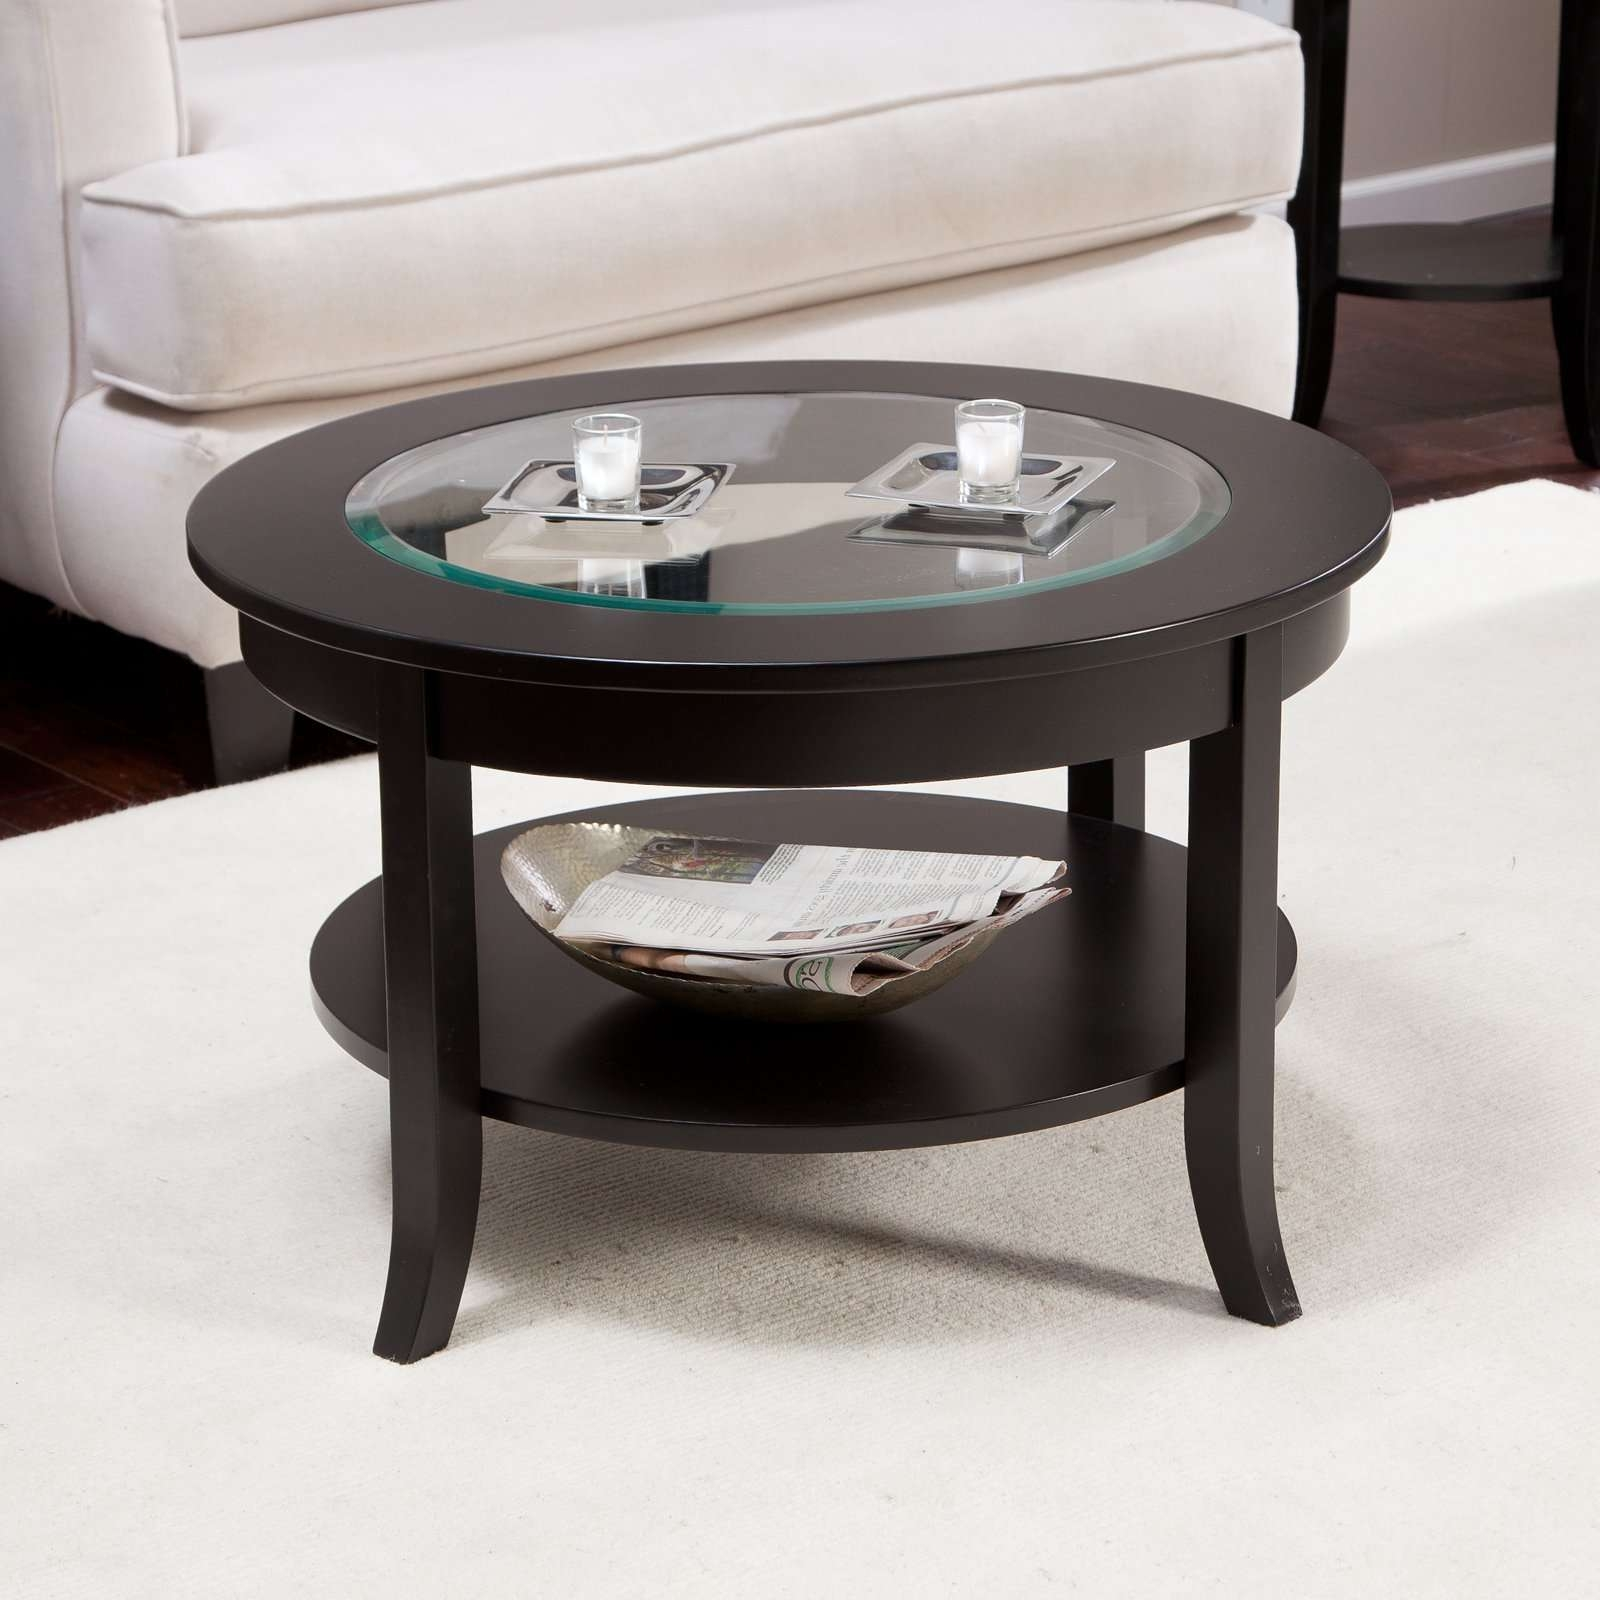 Hayneedle Regarding Popular Circular Coffee Tables (View 9 of 20)